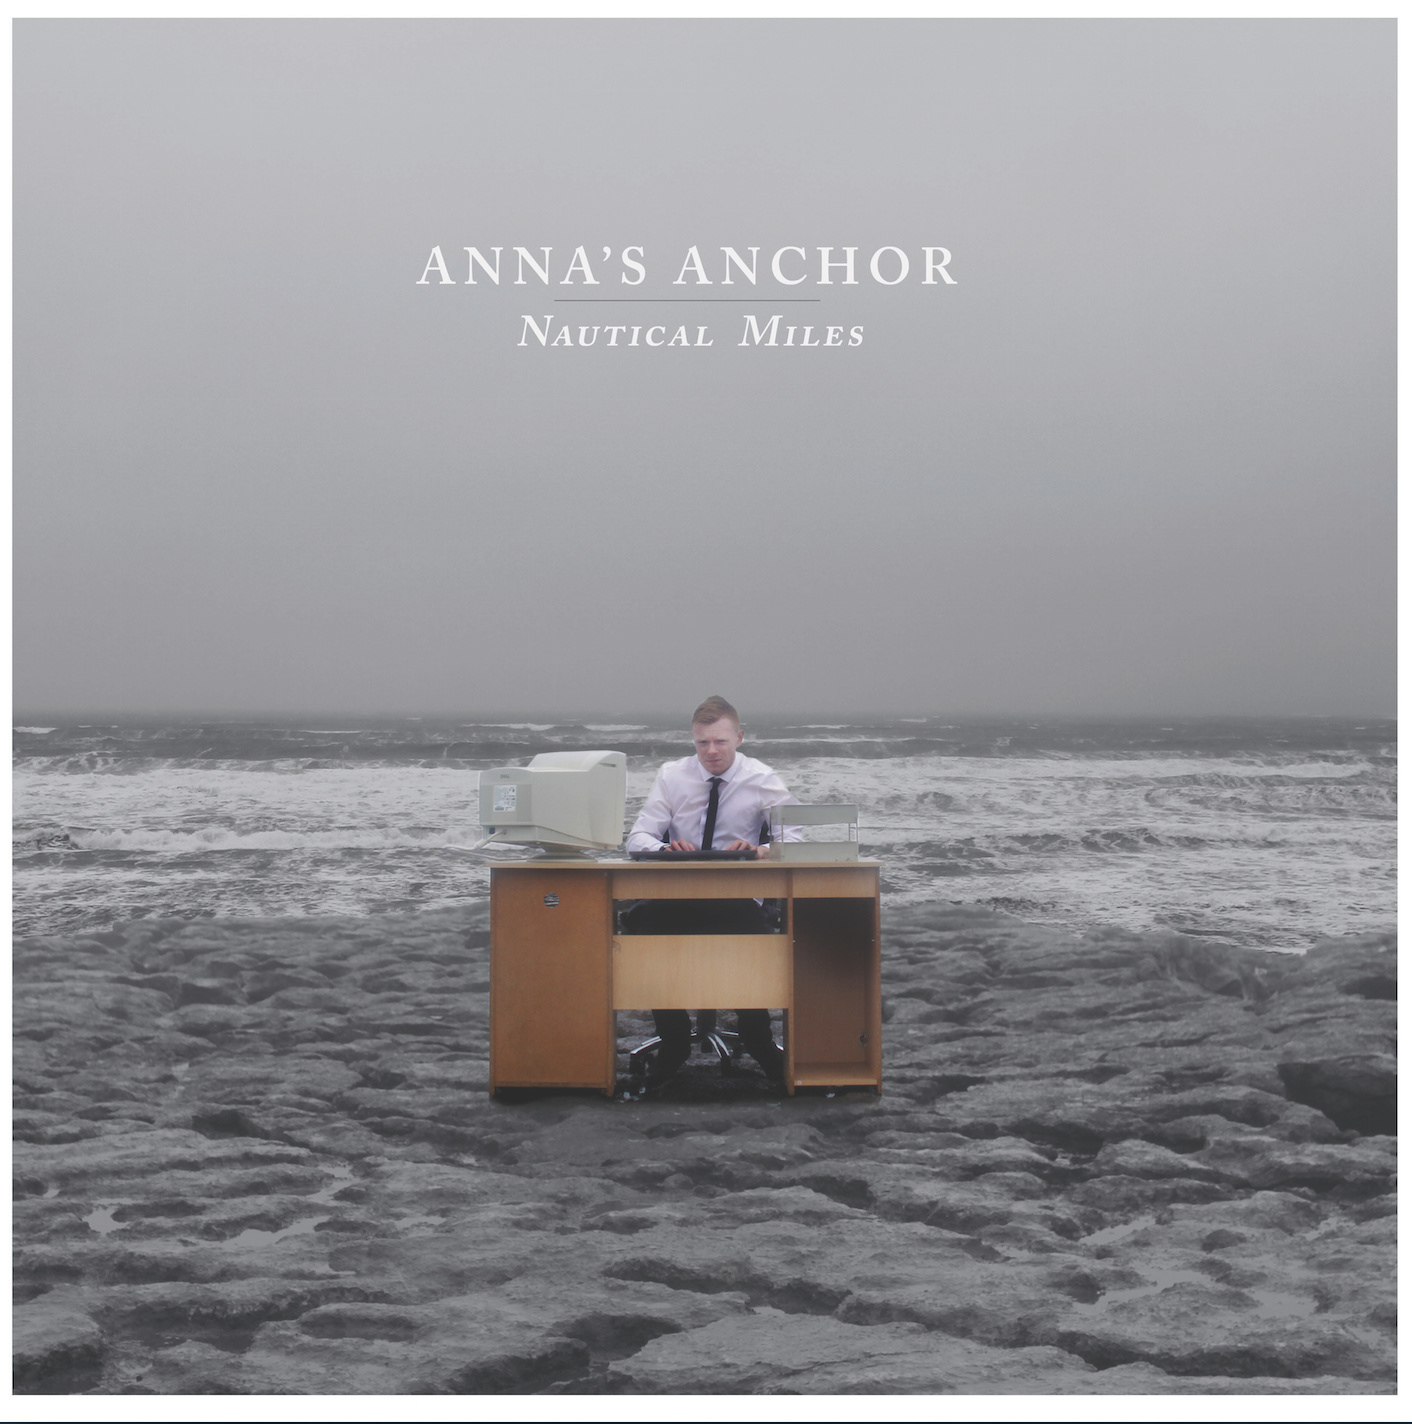 Anna's Anchor debut album Nautical Miles is set to be released this September.